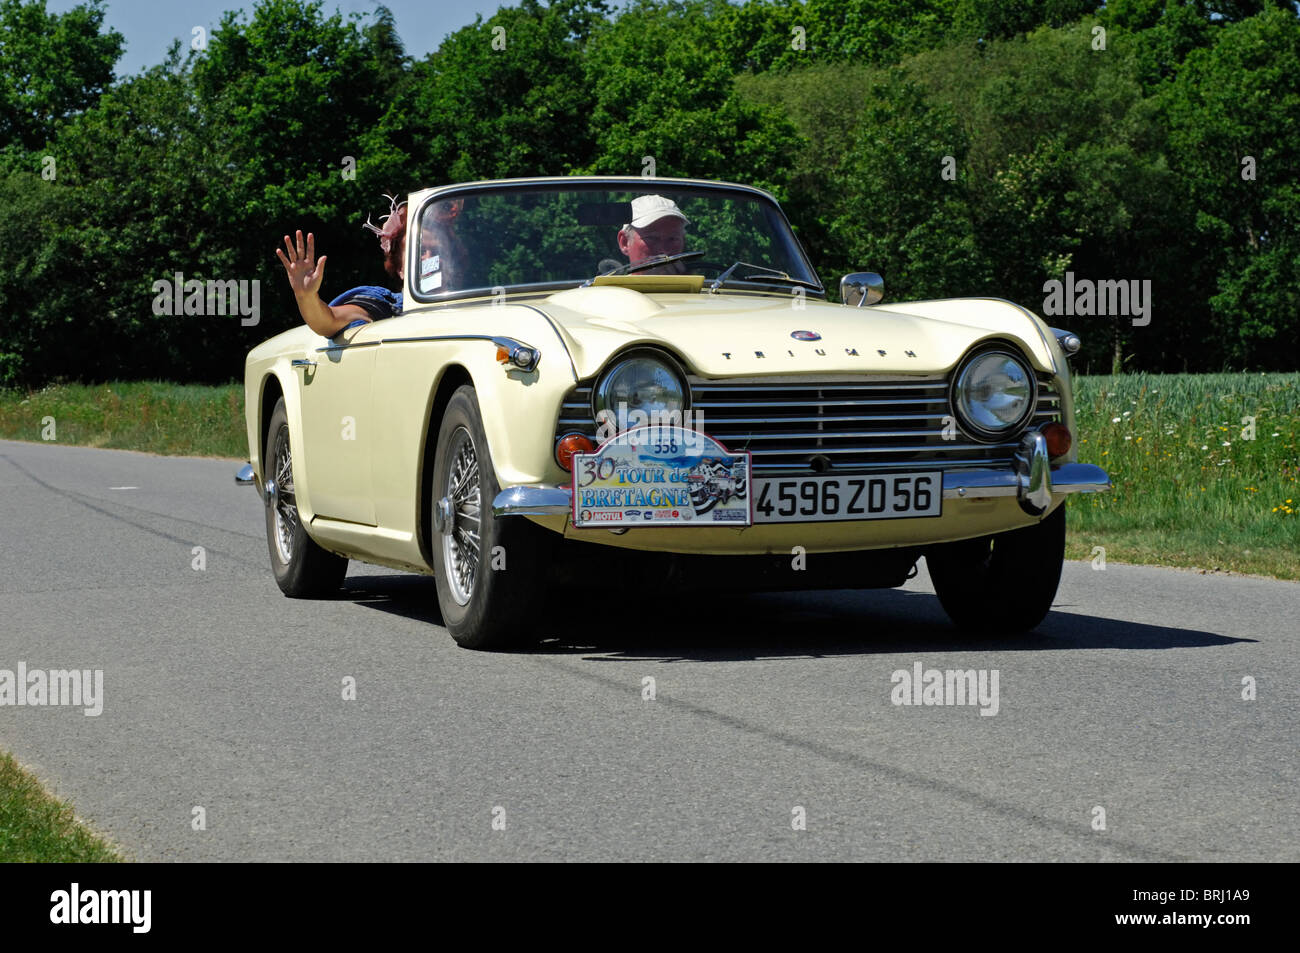 triumph tr4 1965 in the tour de bretagne classic car rally 2010 stock photo royalty free. Black Bedroom Furniture Sets. Home Design Ideas